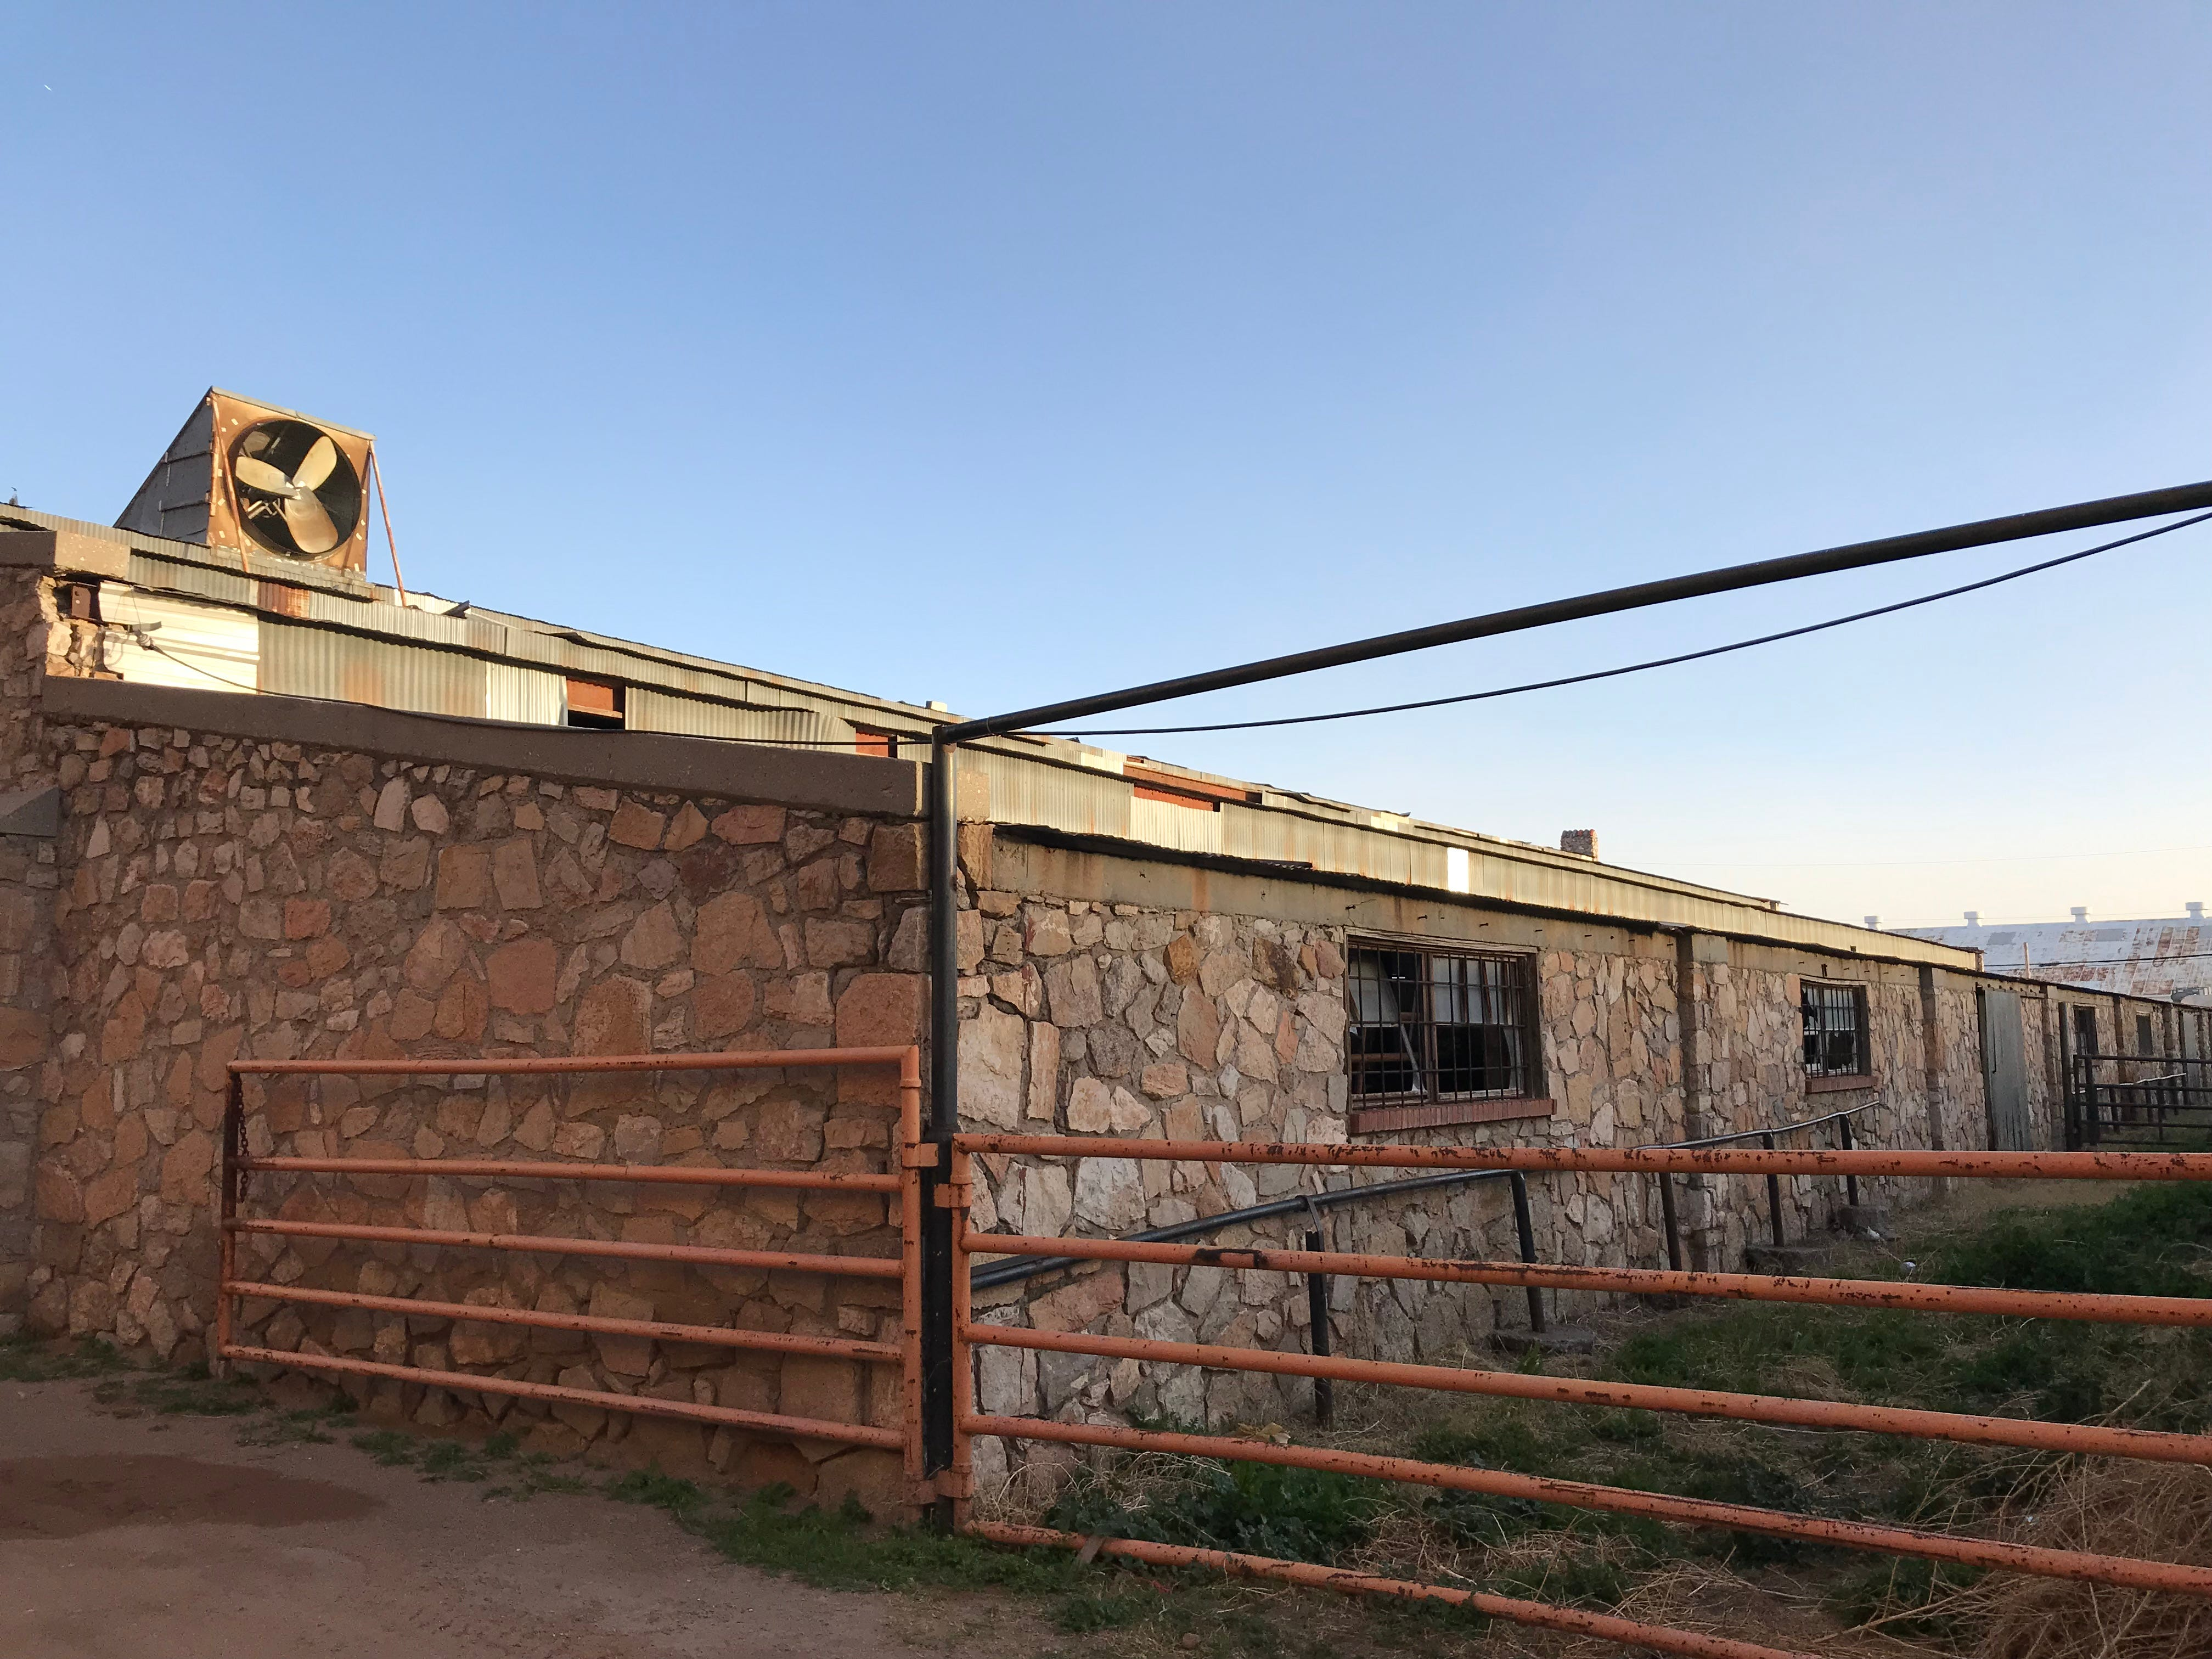 Broken windows are shown in a rock building connected next to the El Paso County Coliseum.